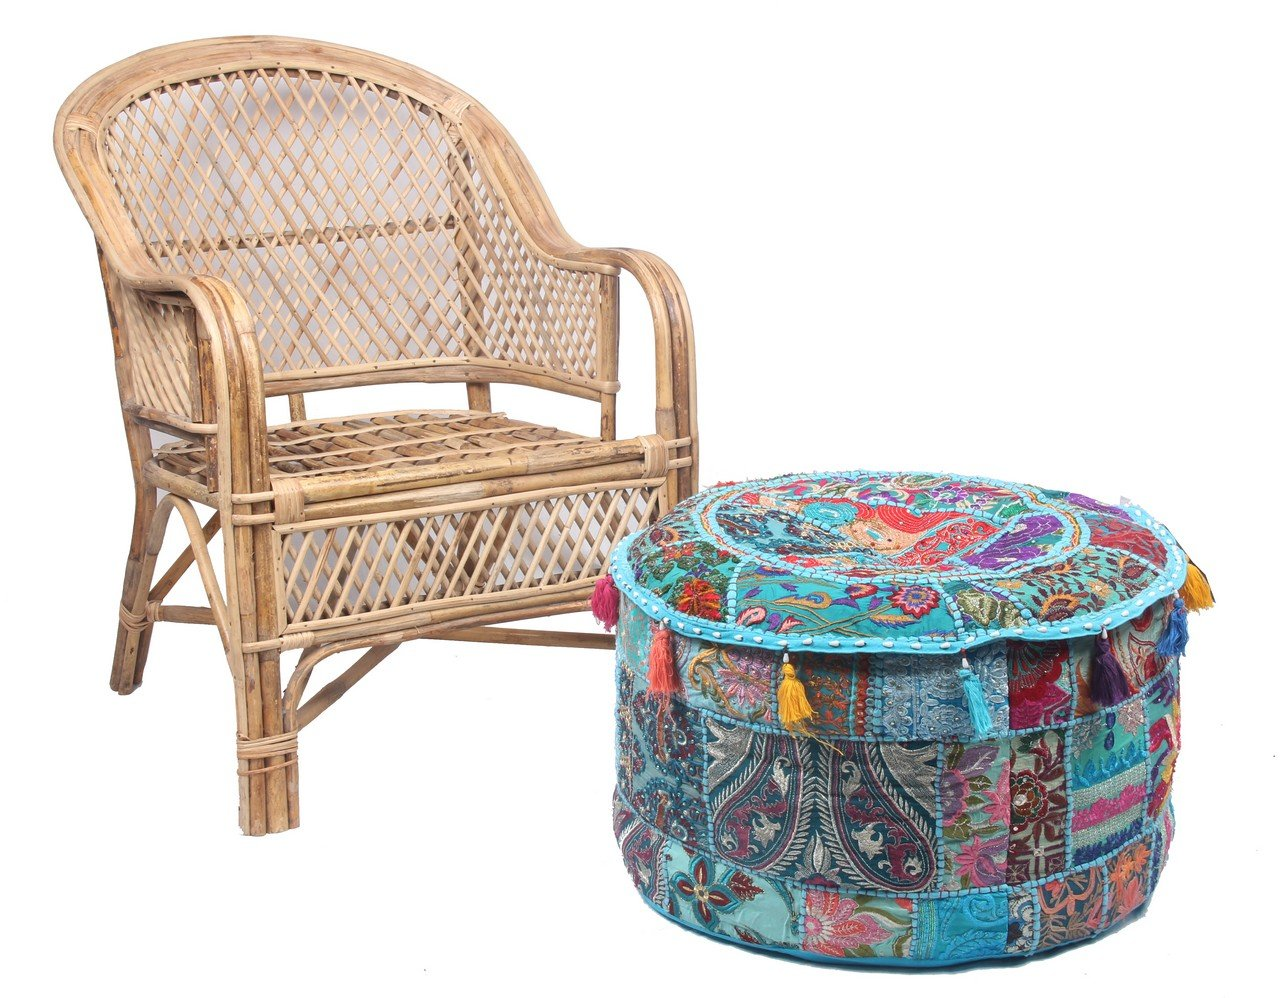 JTH Antique Comfortable Floor Cotton Foot Stool Handmade Patchwork Ottoman Pouf Cover (Size: 22X12X22 Inch) Jaipur Textile Hub